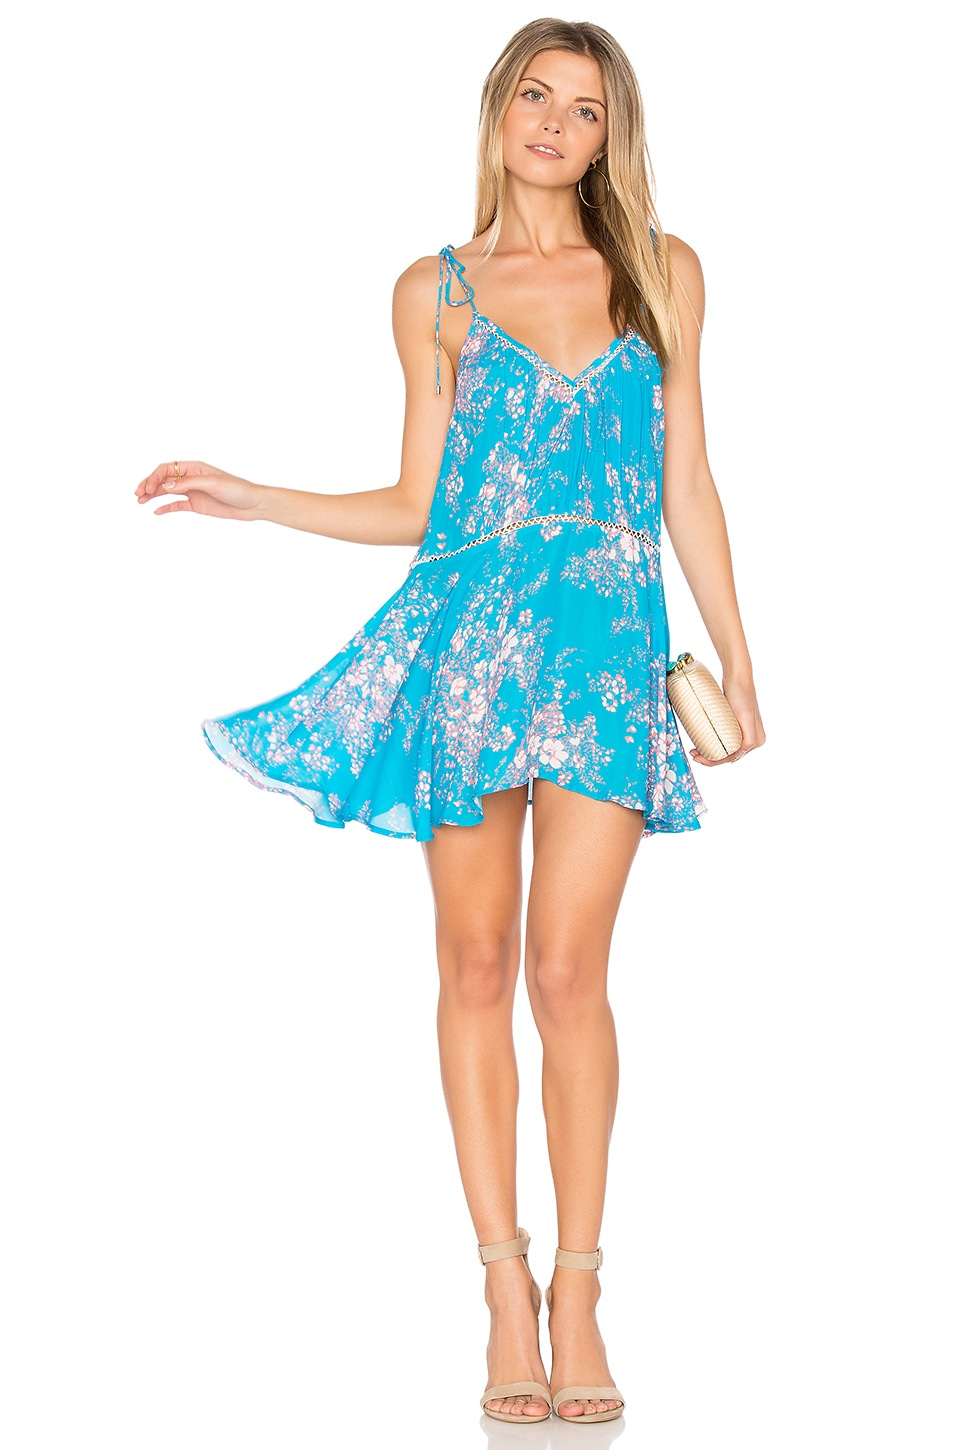 Verano Print Mini Dress